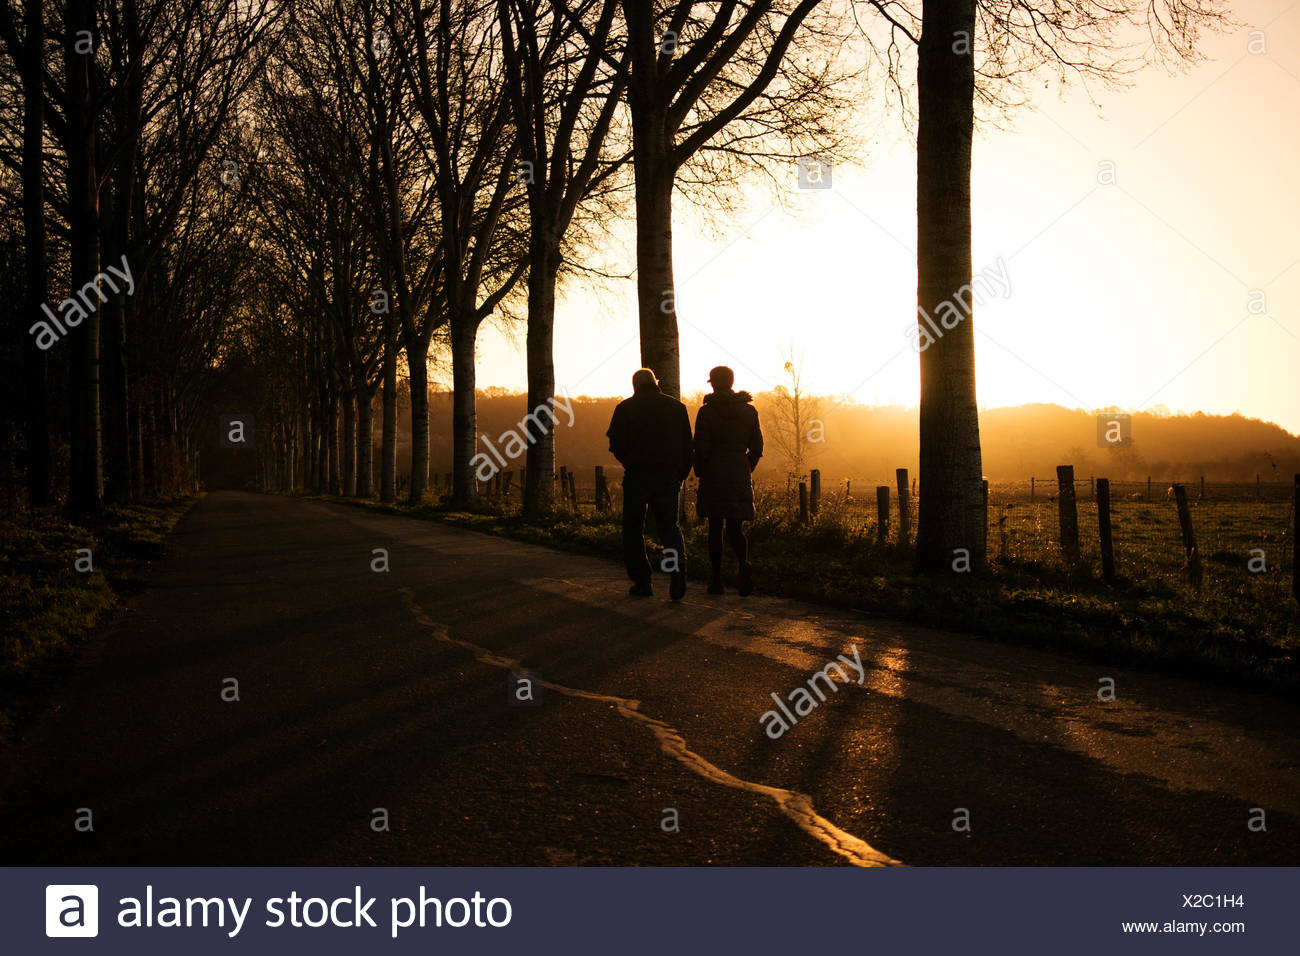 Rear View Of Man And Woman By Trees On Road During Sunset - Stock Image